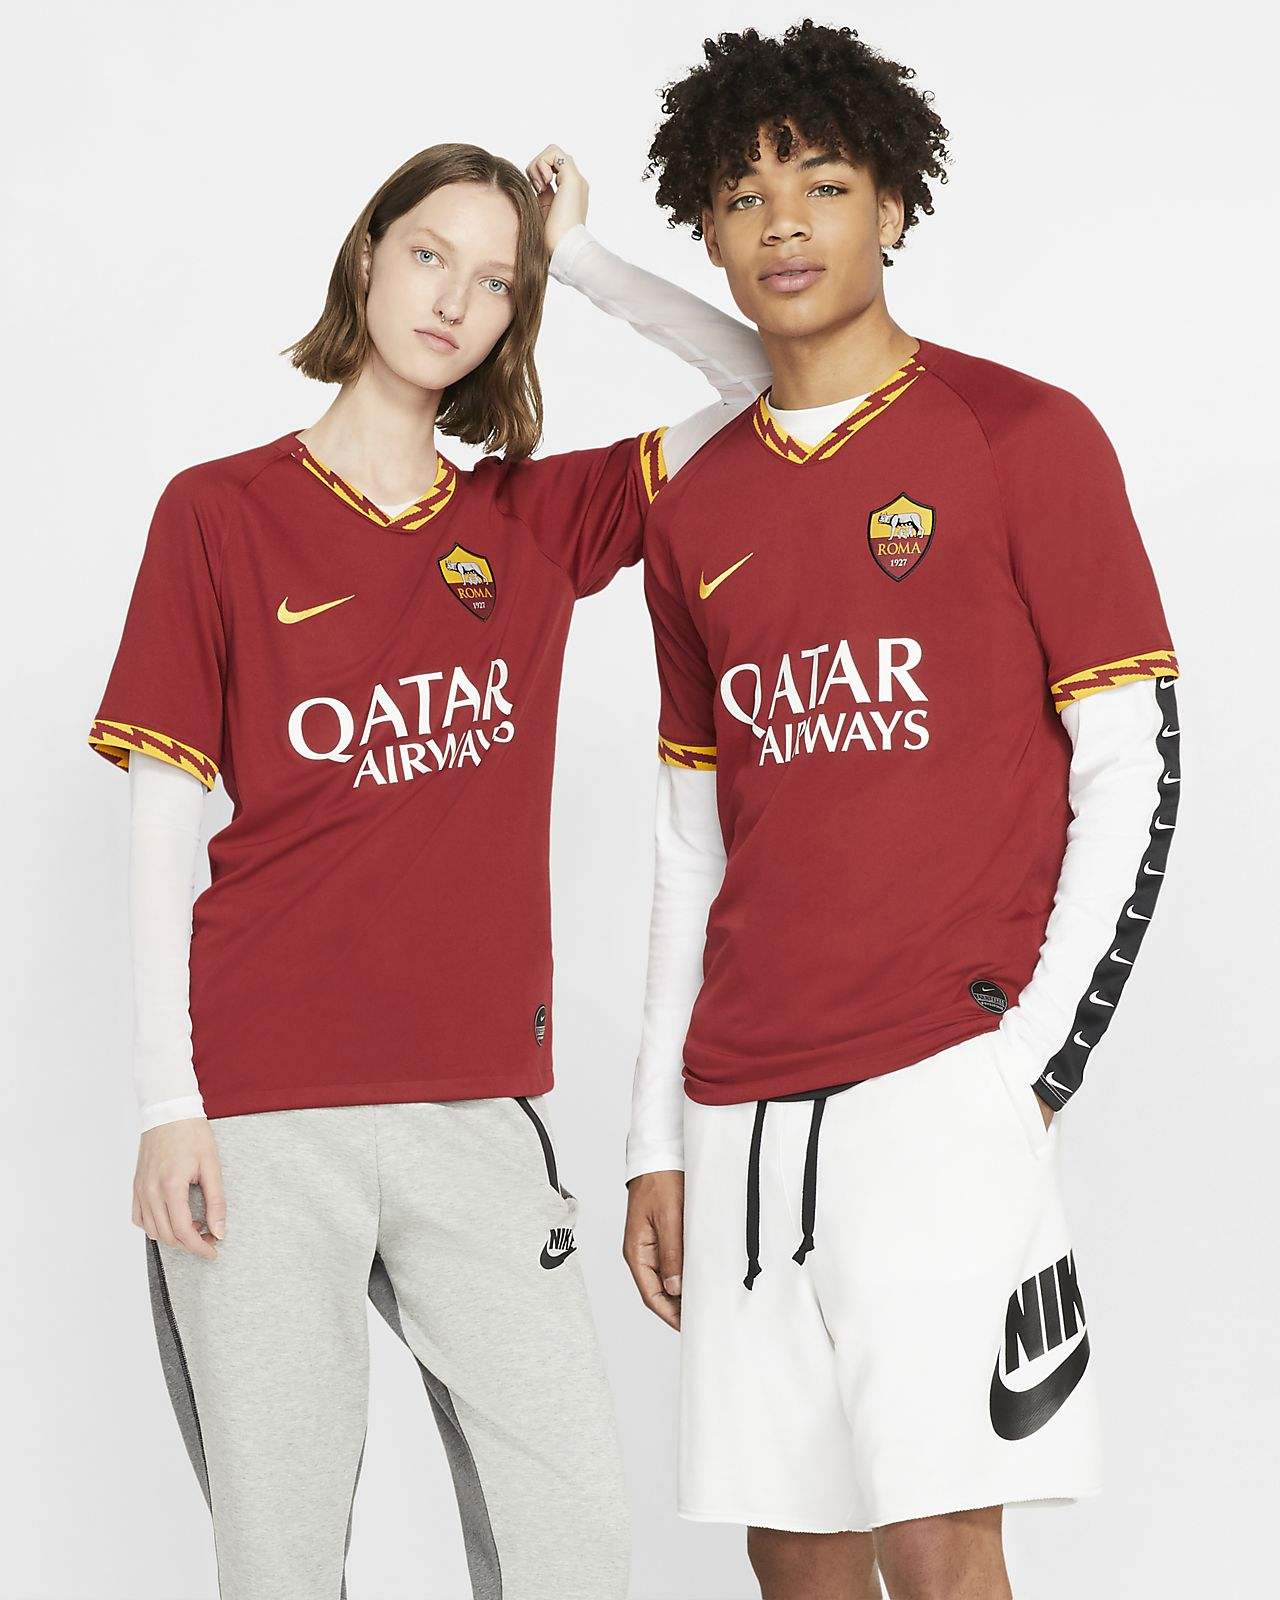 Calendario As Roma 201920.Camiseta De Futbol A S Roma 2019 20 Stadium De Local